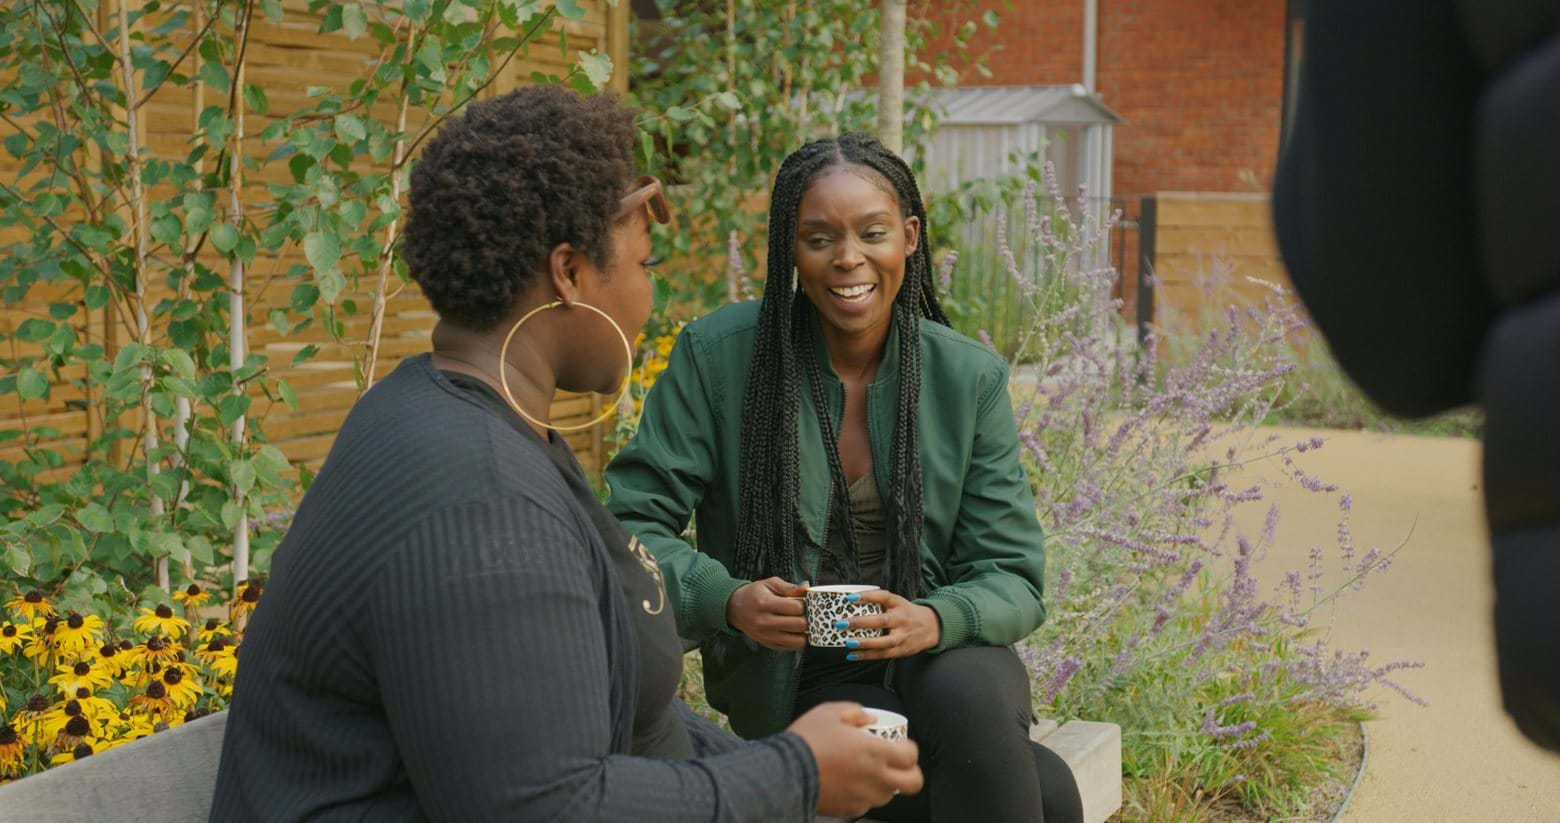 Mary has made close friendships with other neighbours at The Reach